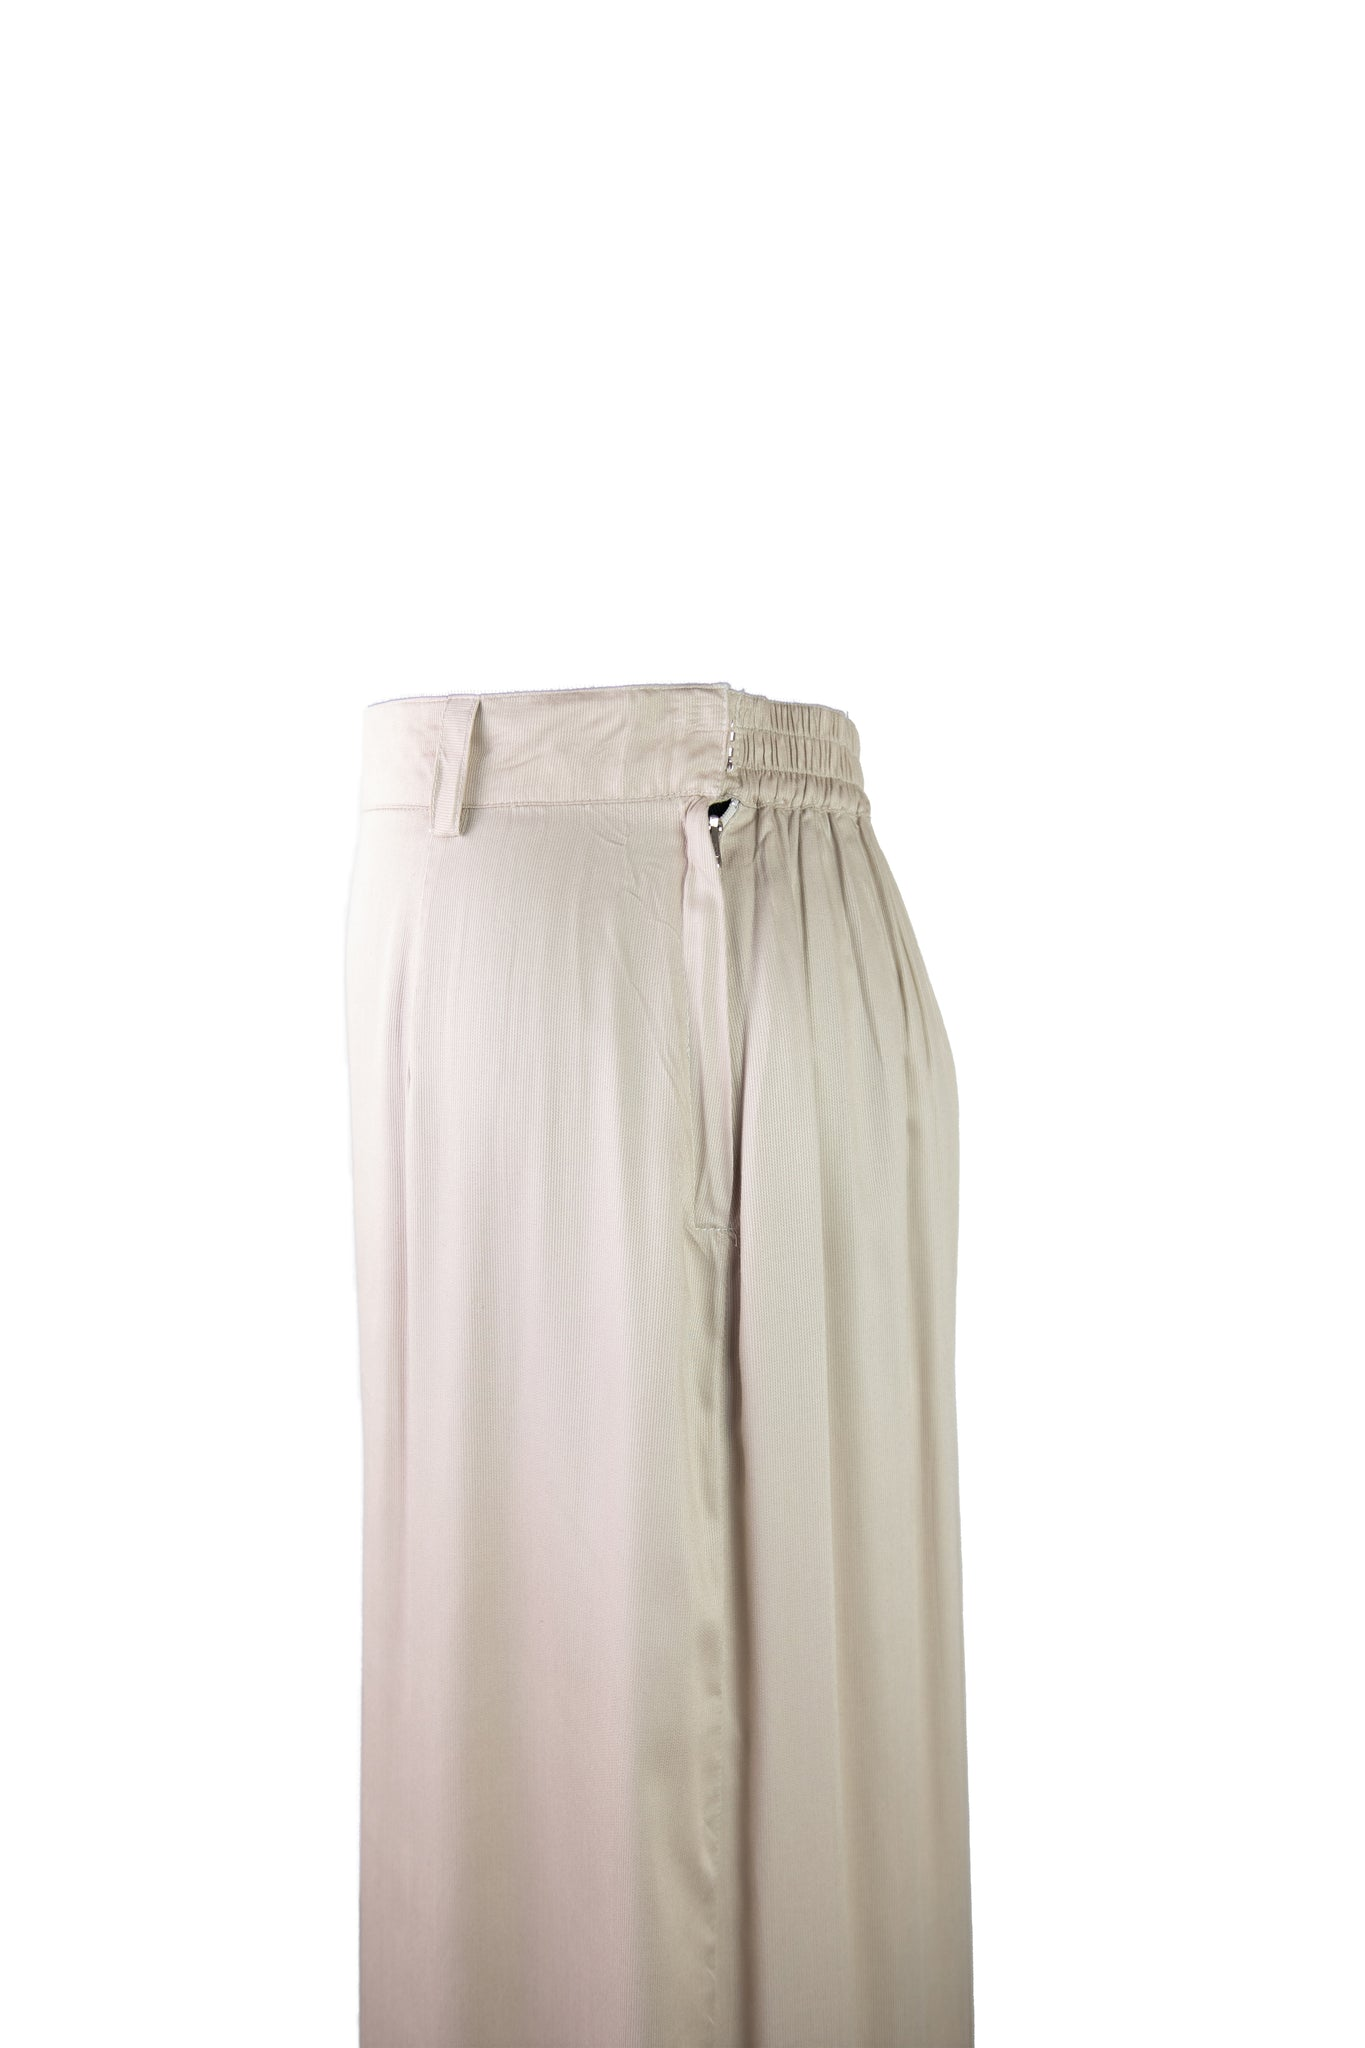 Straight skirt 819 Beige